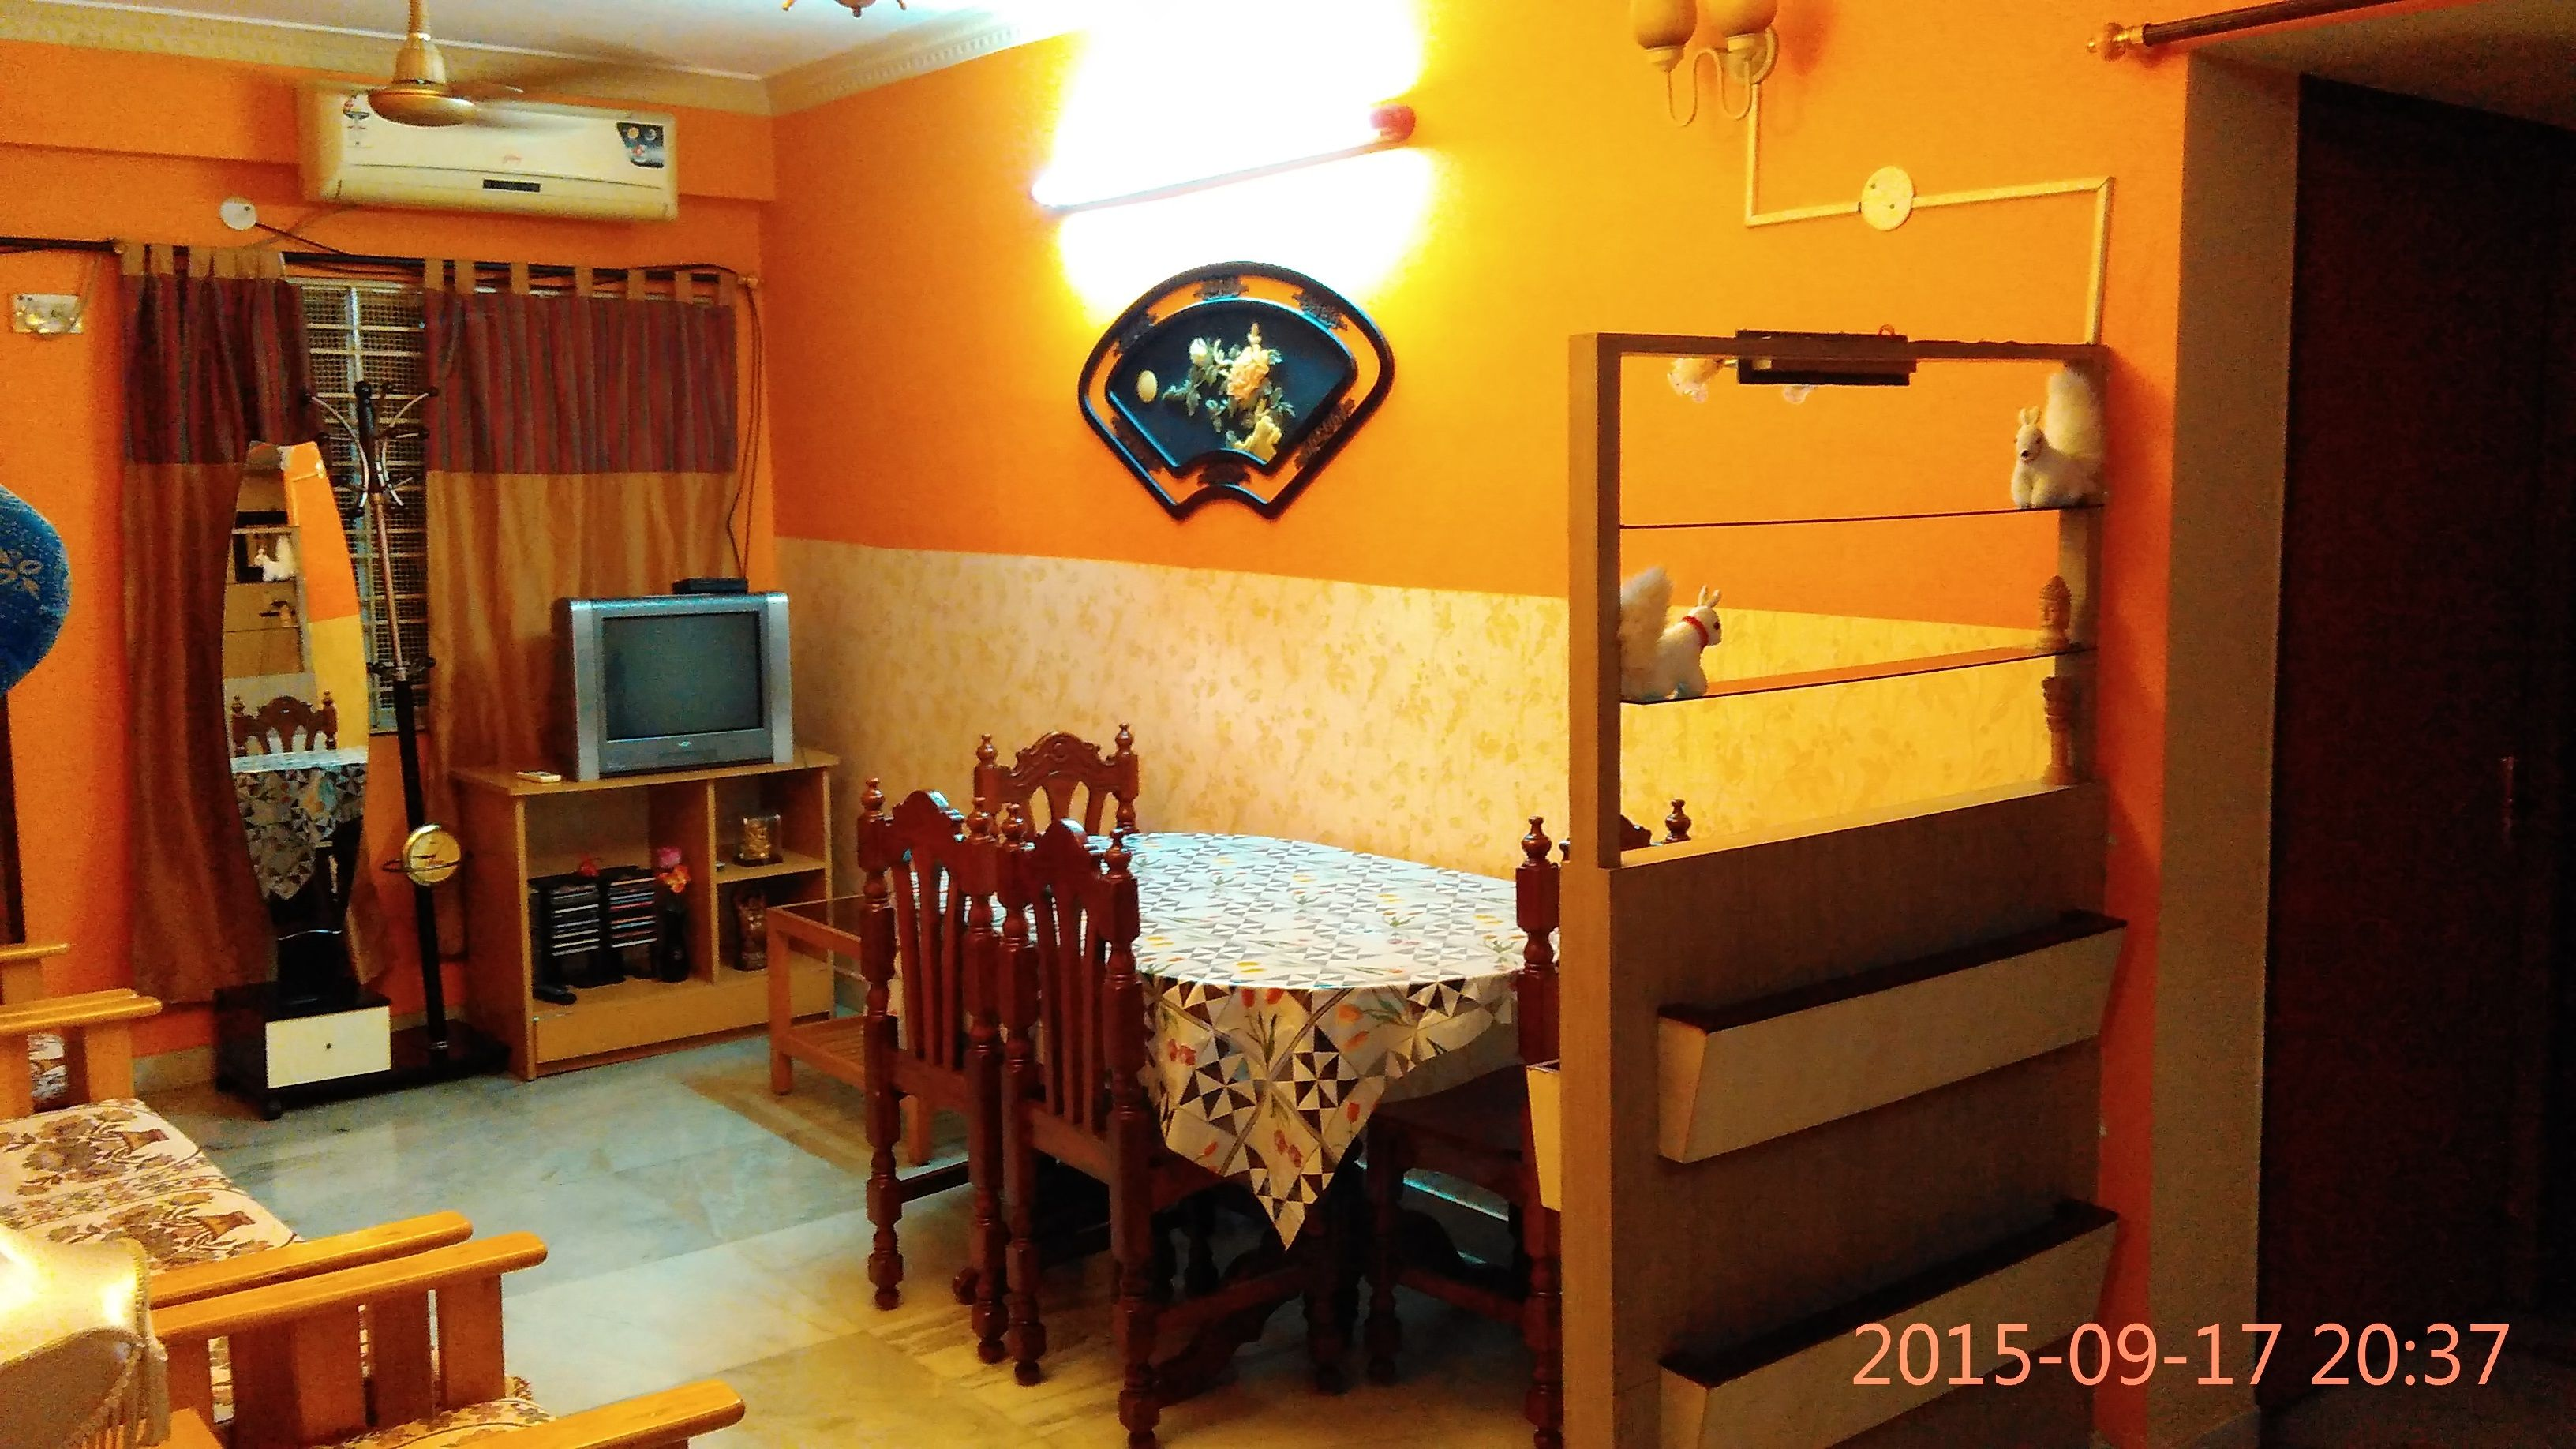 https://www.olx.in/item/lowest-price-1411-sqft-2-bhk-flat-for-sale-incl-party-terrace-ac-ID1biVaB.html